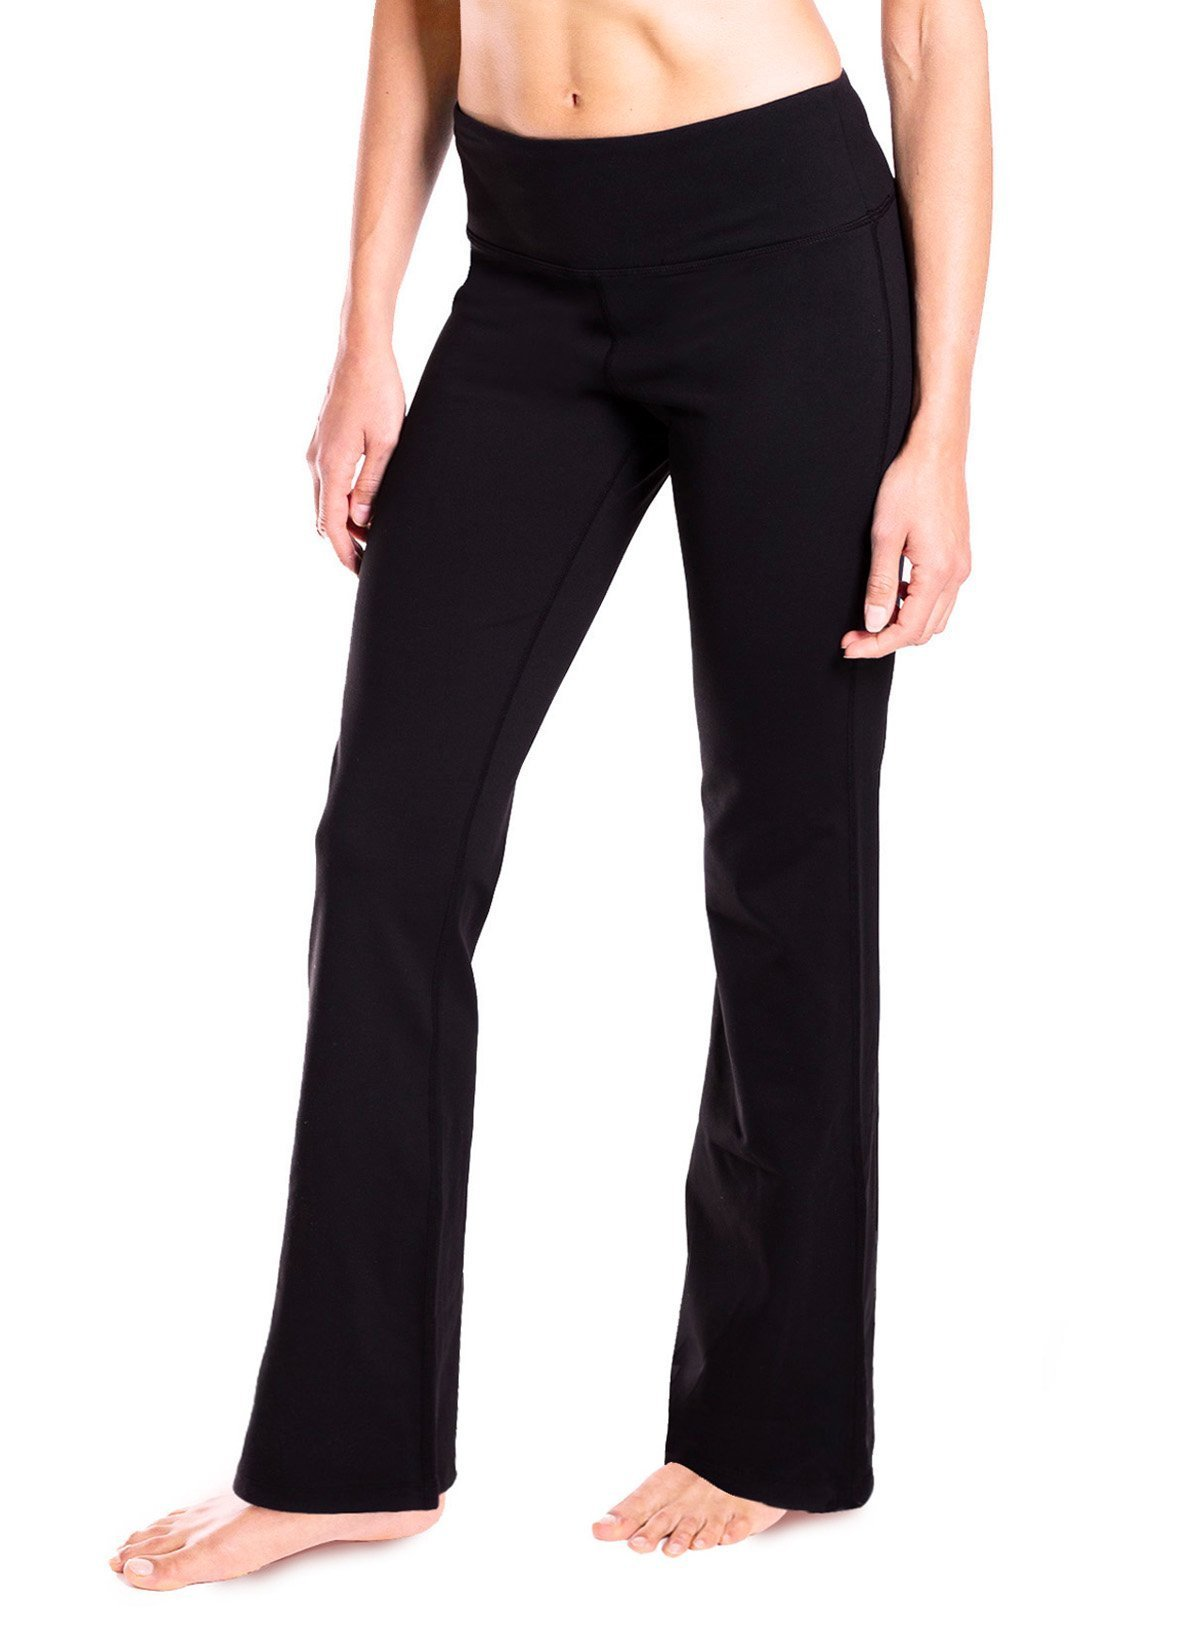 9f9ee5570773b Best Rated in Women's Yoga Pants & Helpful Customer Reviews - Amazon.com